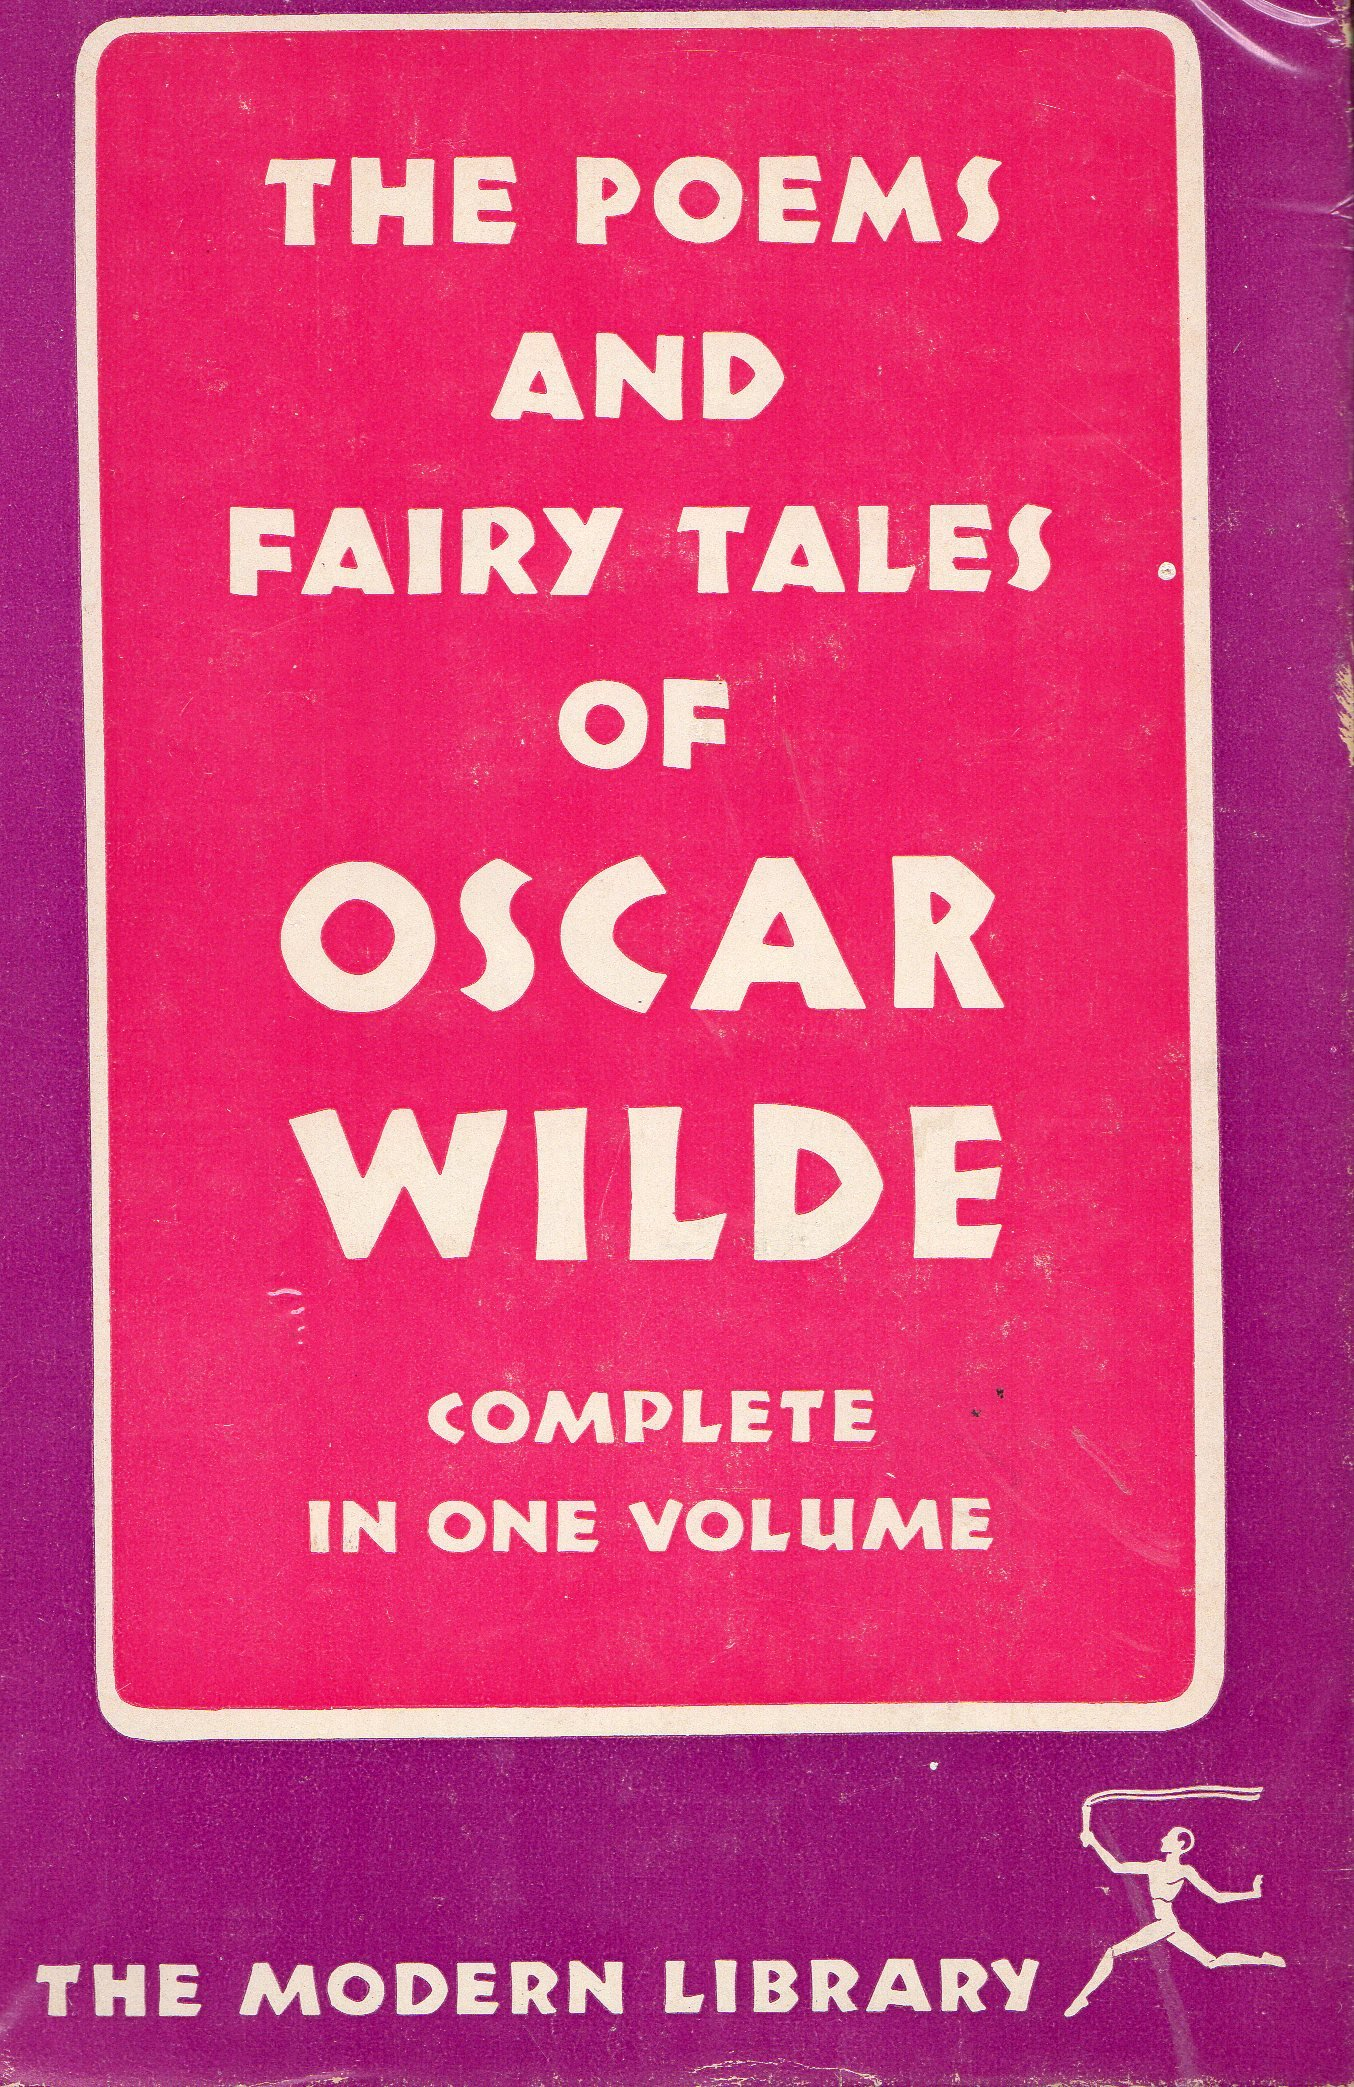 The Poems And Fairy Tales Of Oscar Wilde Complete In One